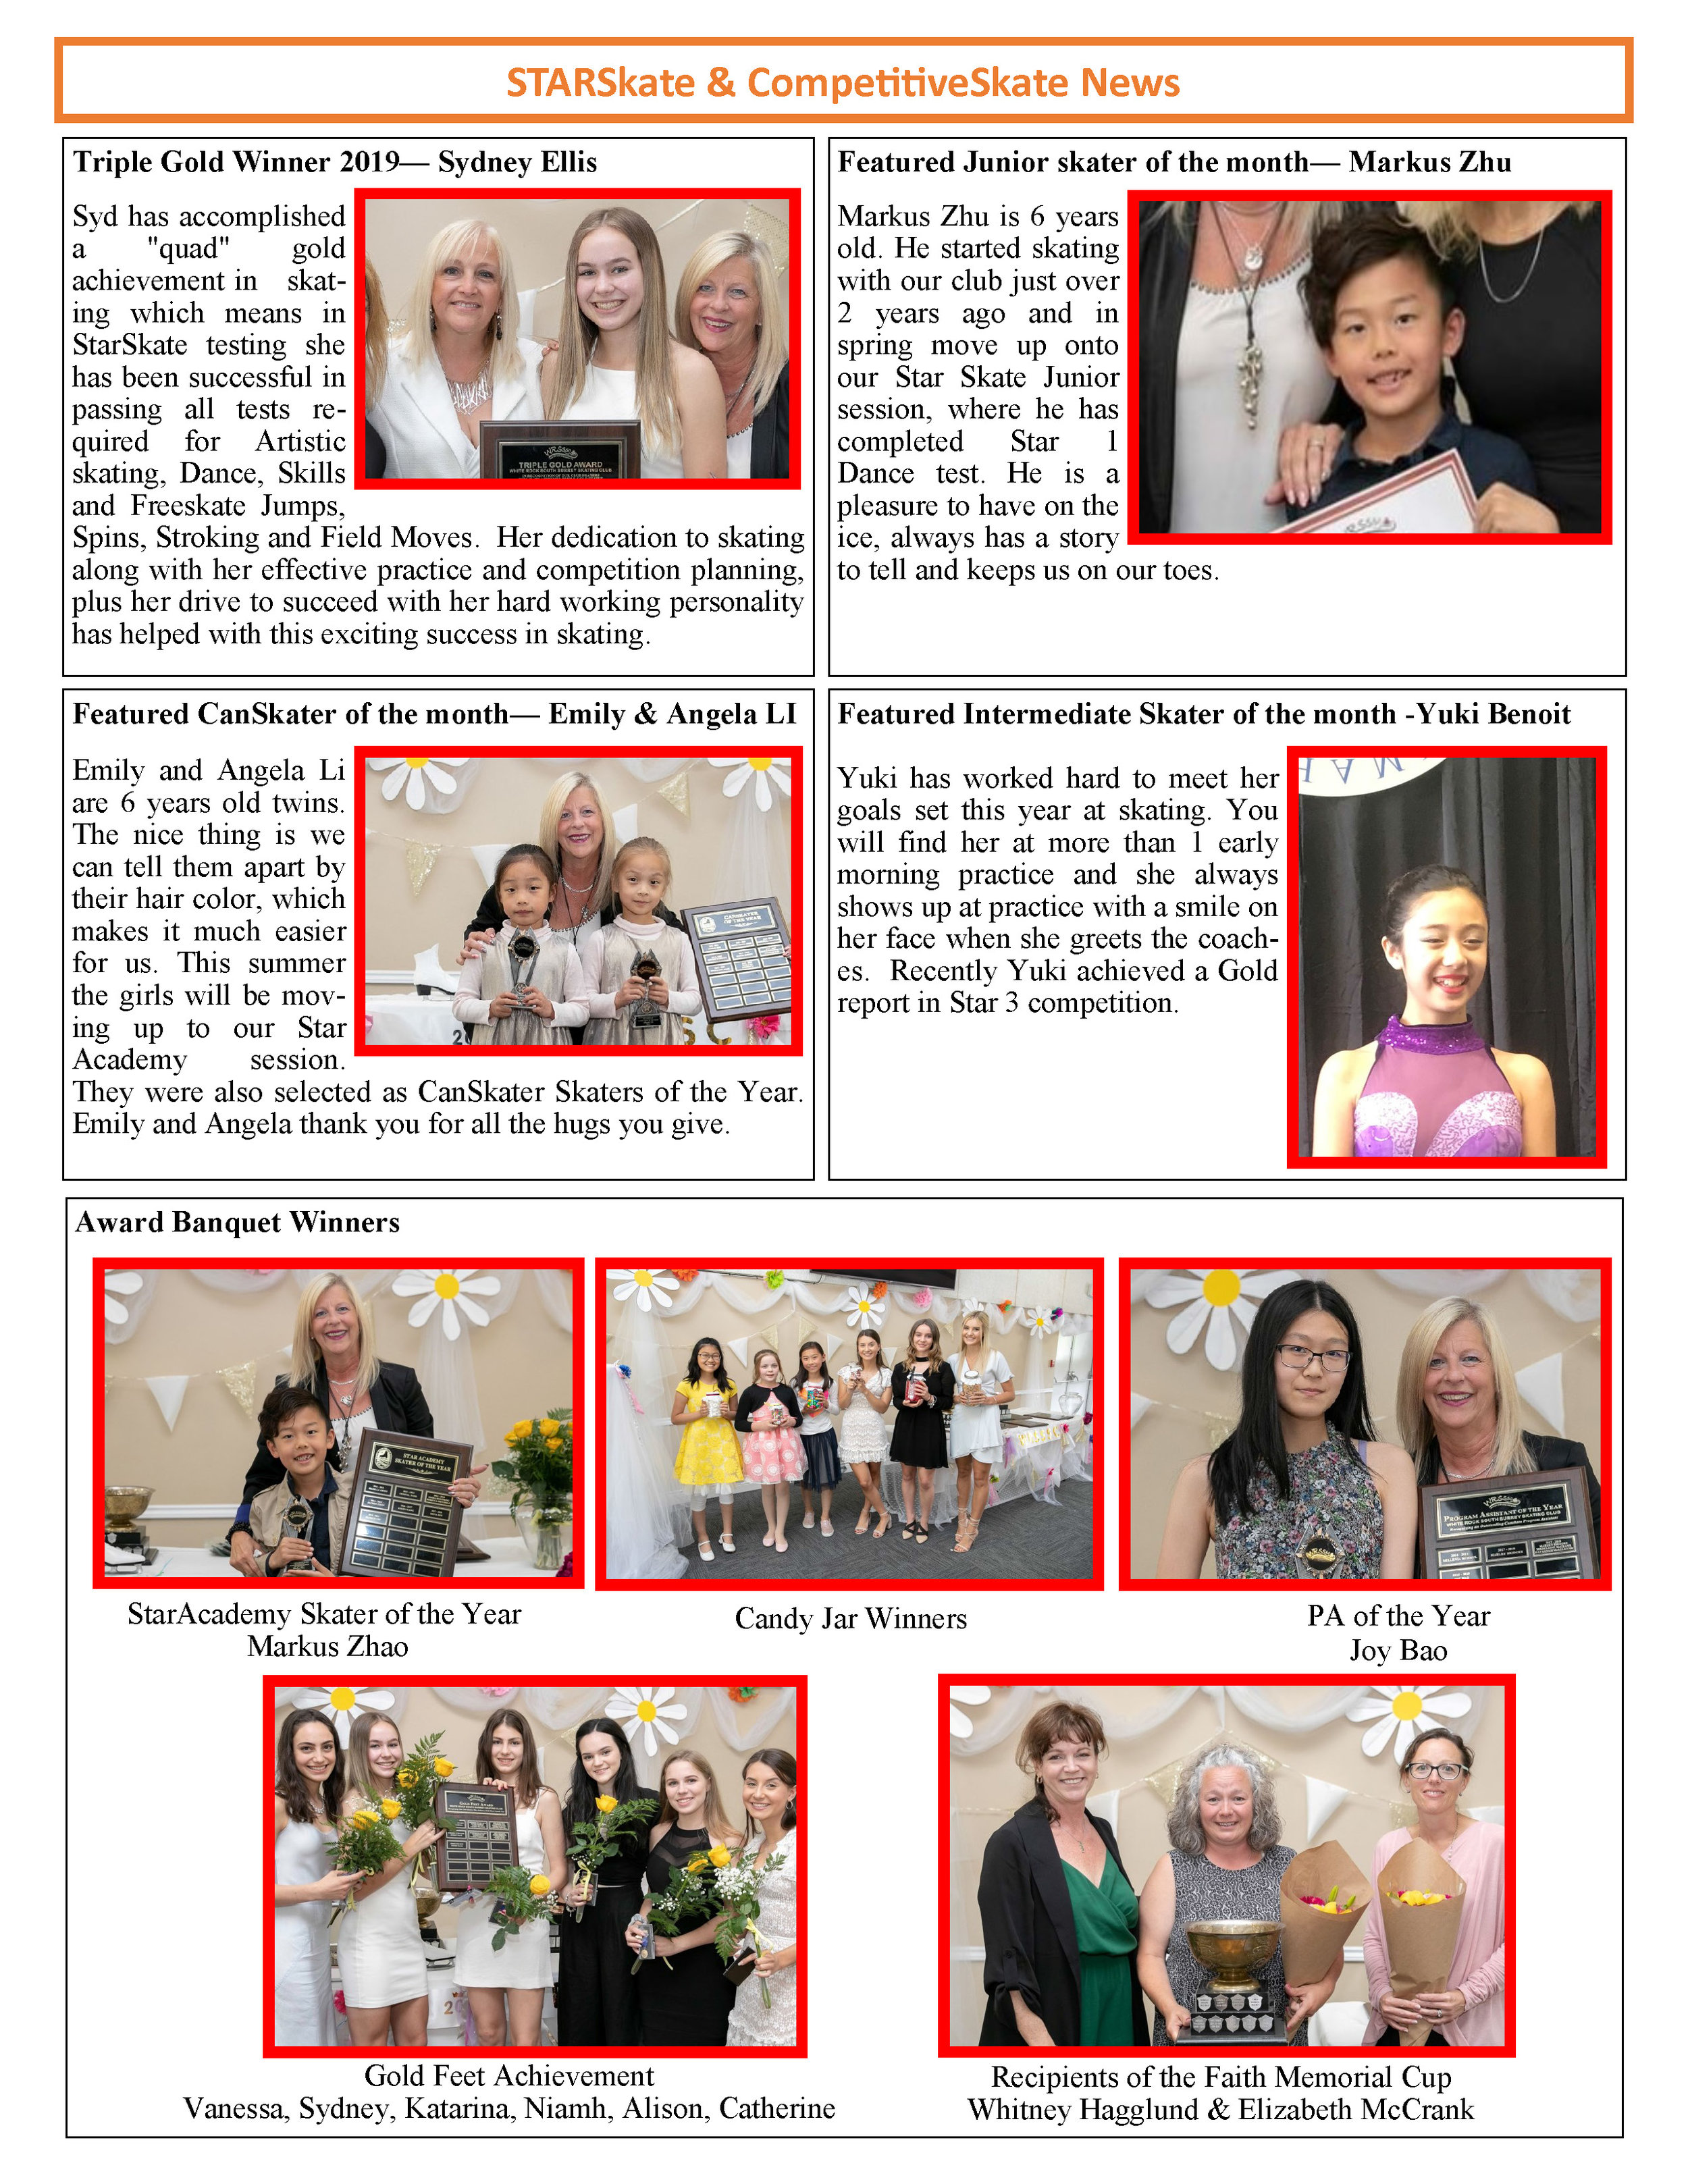 WRSSSC Newsletter June-July 2019 2.jpg